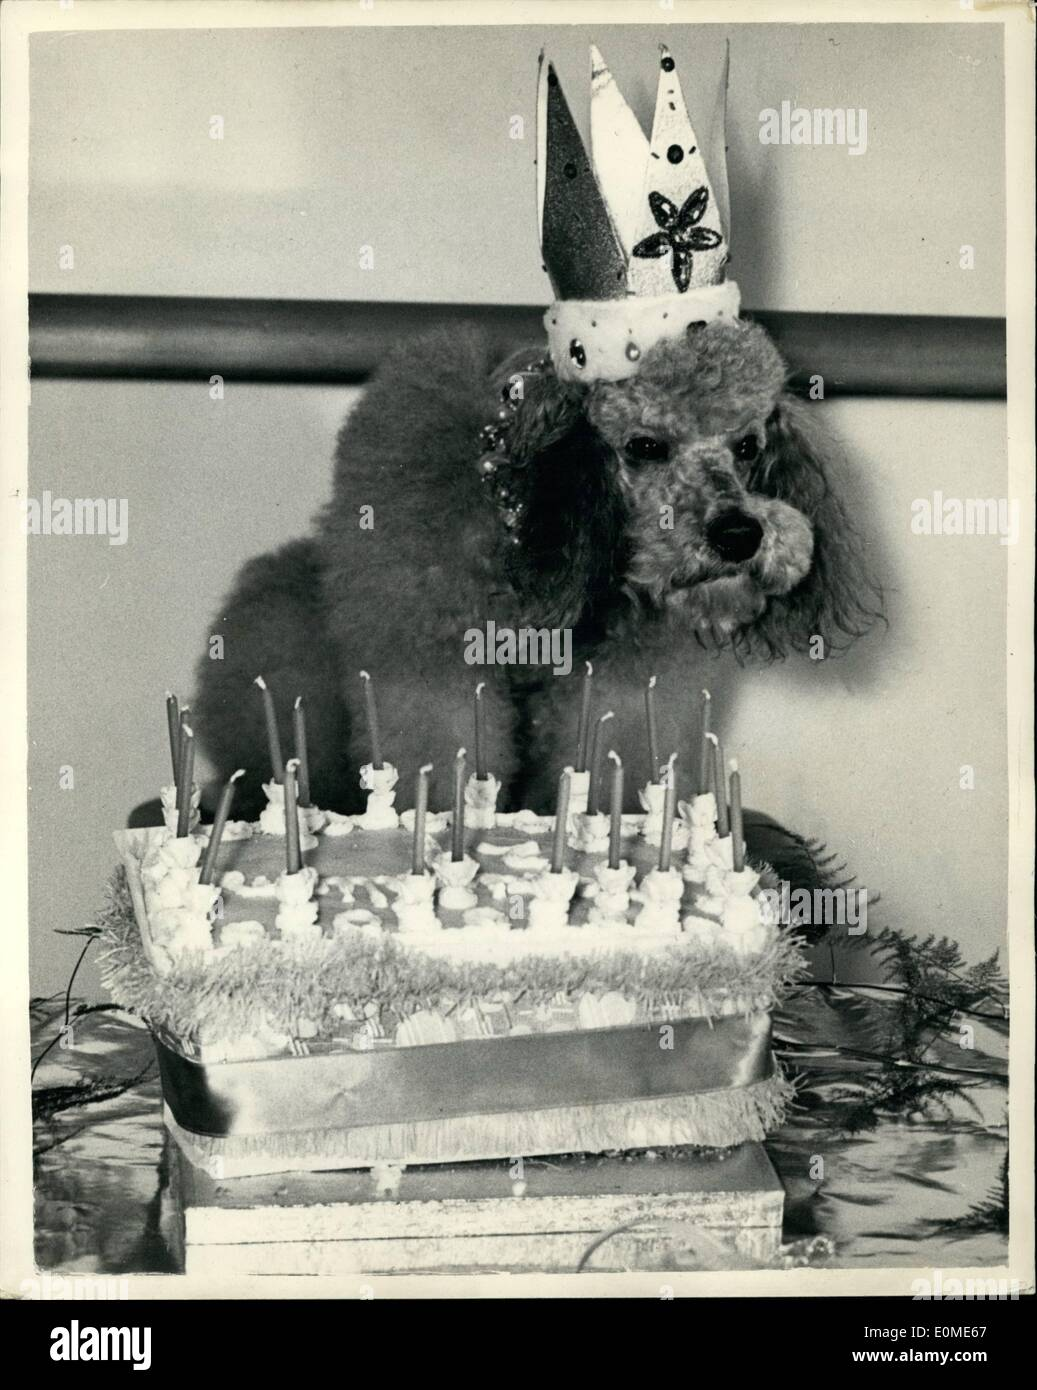 Jan. 01, 1955 - Society Girl's Dog celebrates his 21st. Birthday He is only three really!!!!.: Thirty poodles attended the 'party' given by society girl Cynthia Springman in London yesterday in honour of the 21st. birthday of her poodle ''Maeimillian Tarrywood Silver Sprig-Emperer'' (The age reckoning being at the rate of seven dog years to one human - he is really only three).. The dogs ate chicken, rabbit; olives salami and Gruyere cheese - and their milk was served from a champagne magnum - Stock Image